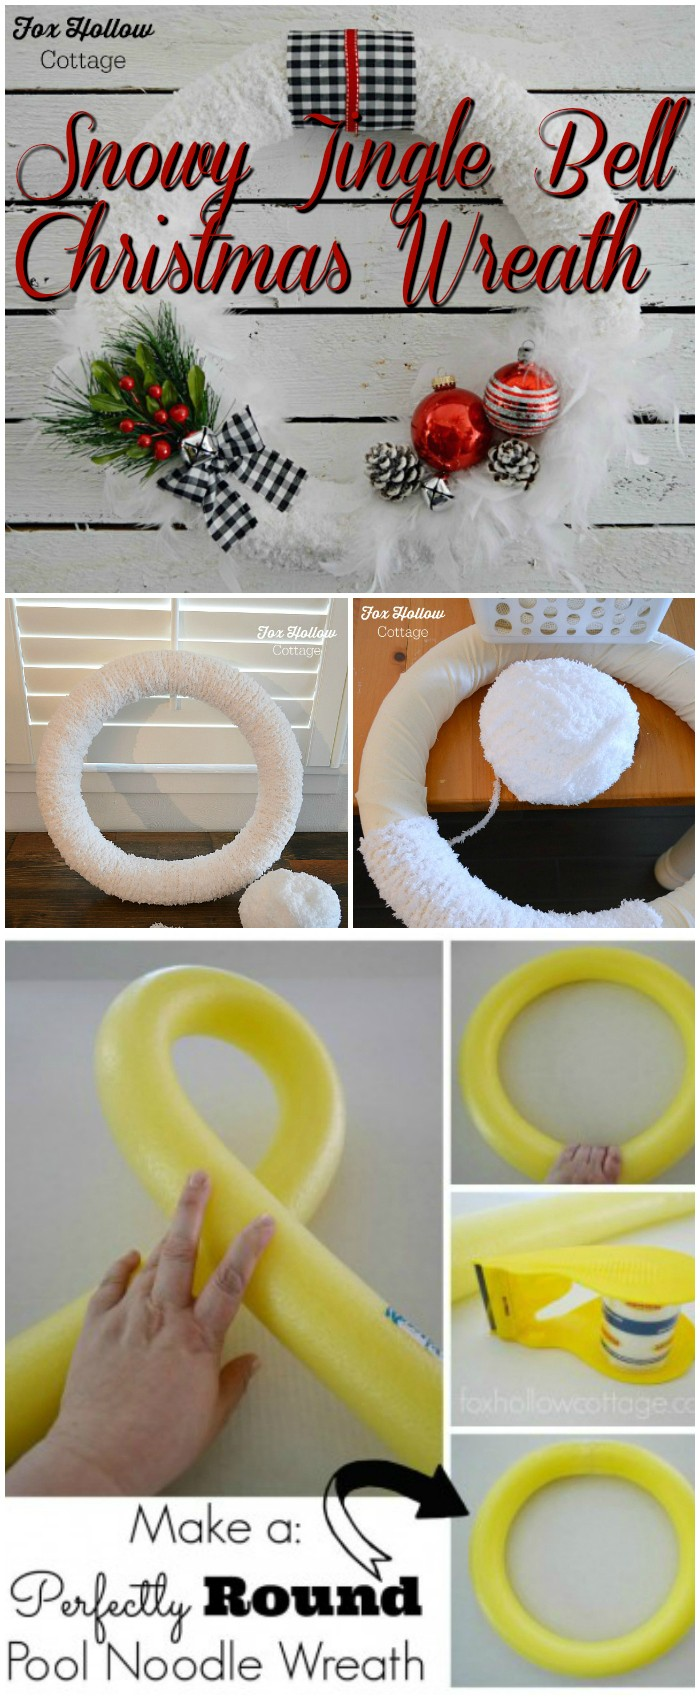 How To Make a Snowy Jingle Bell Christmas Wreath